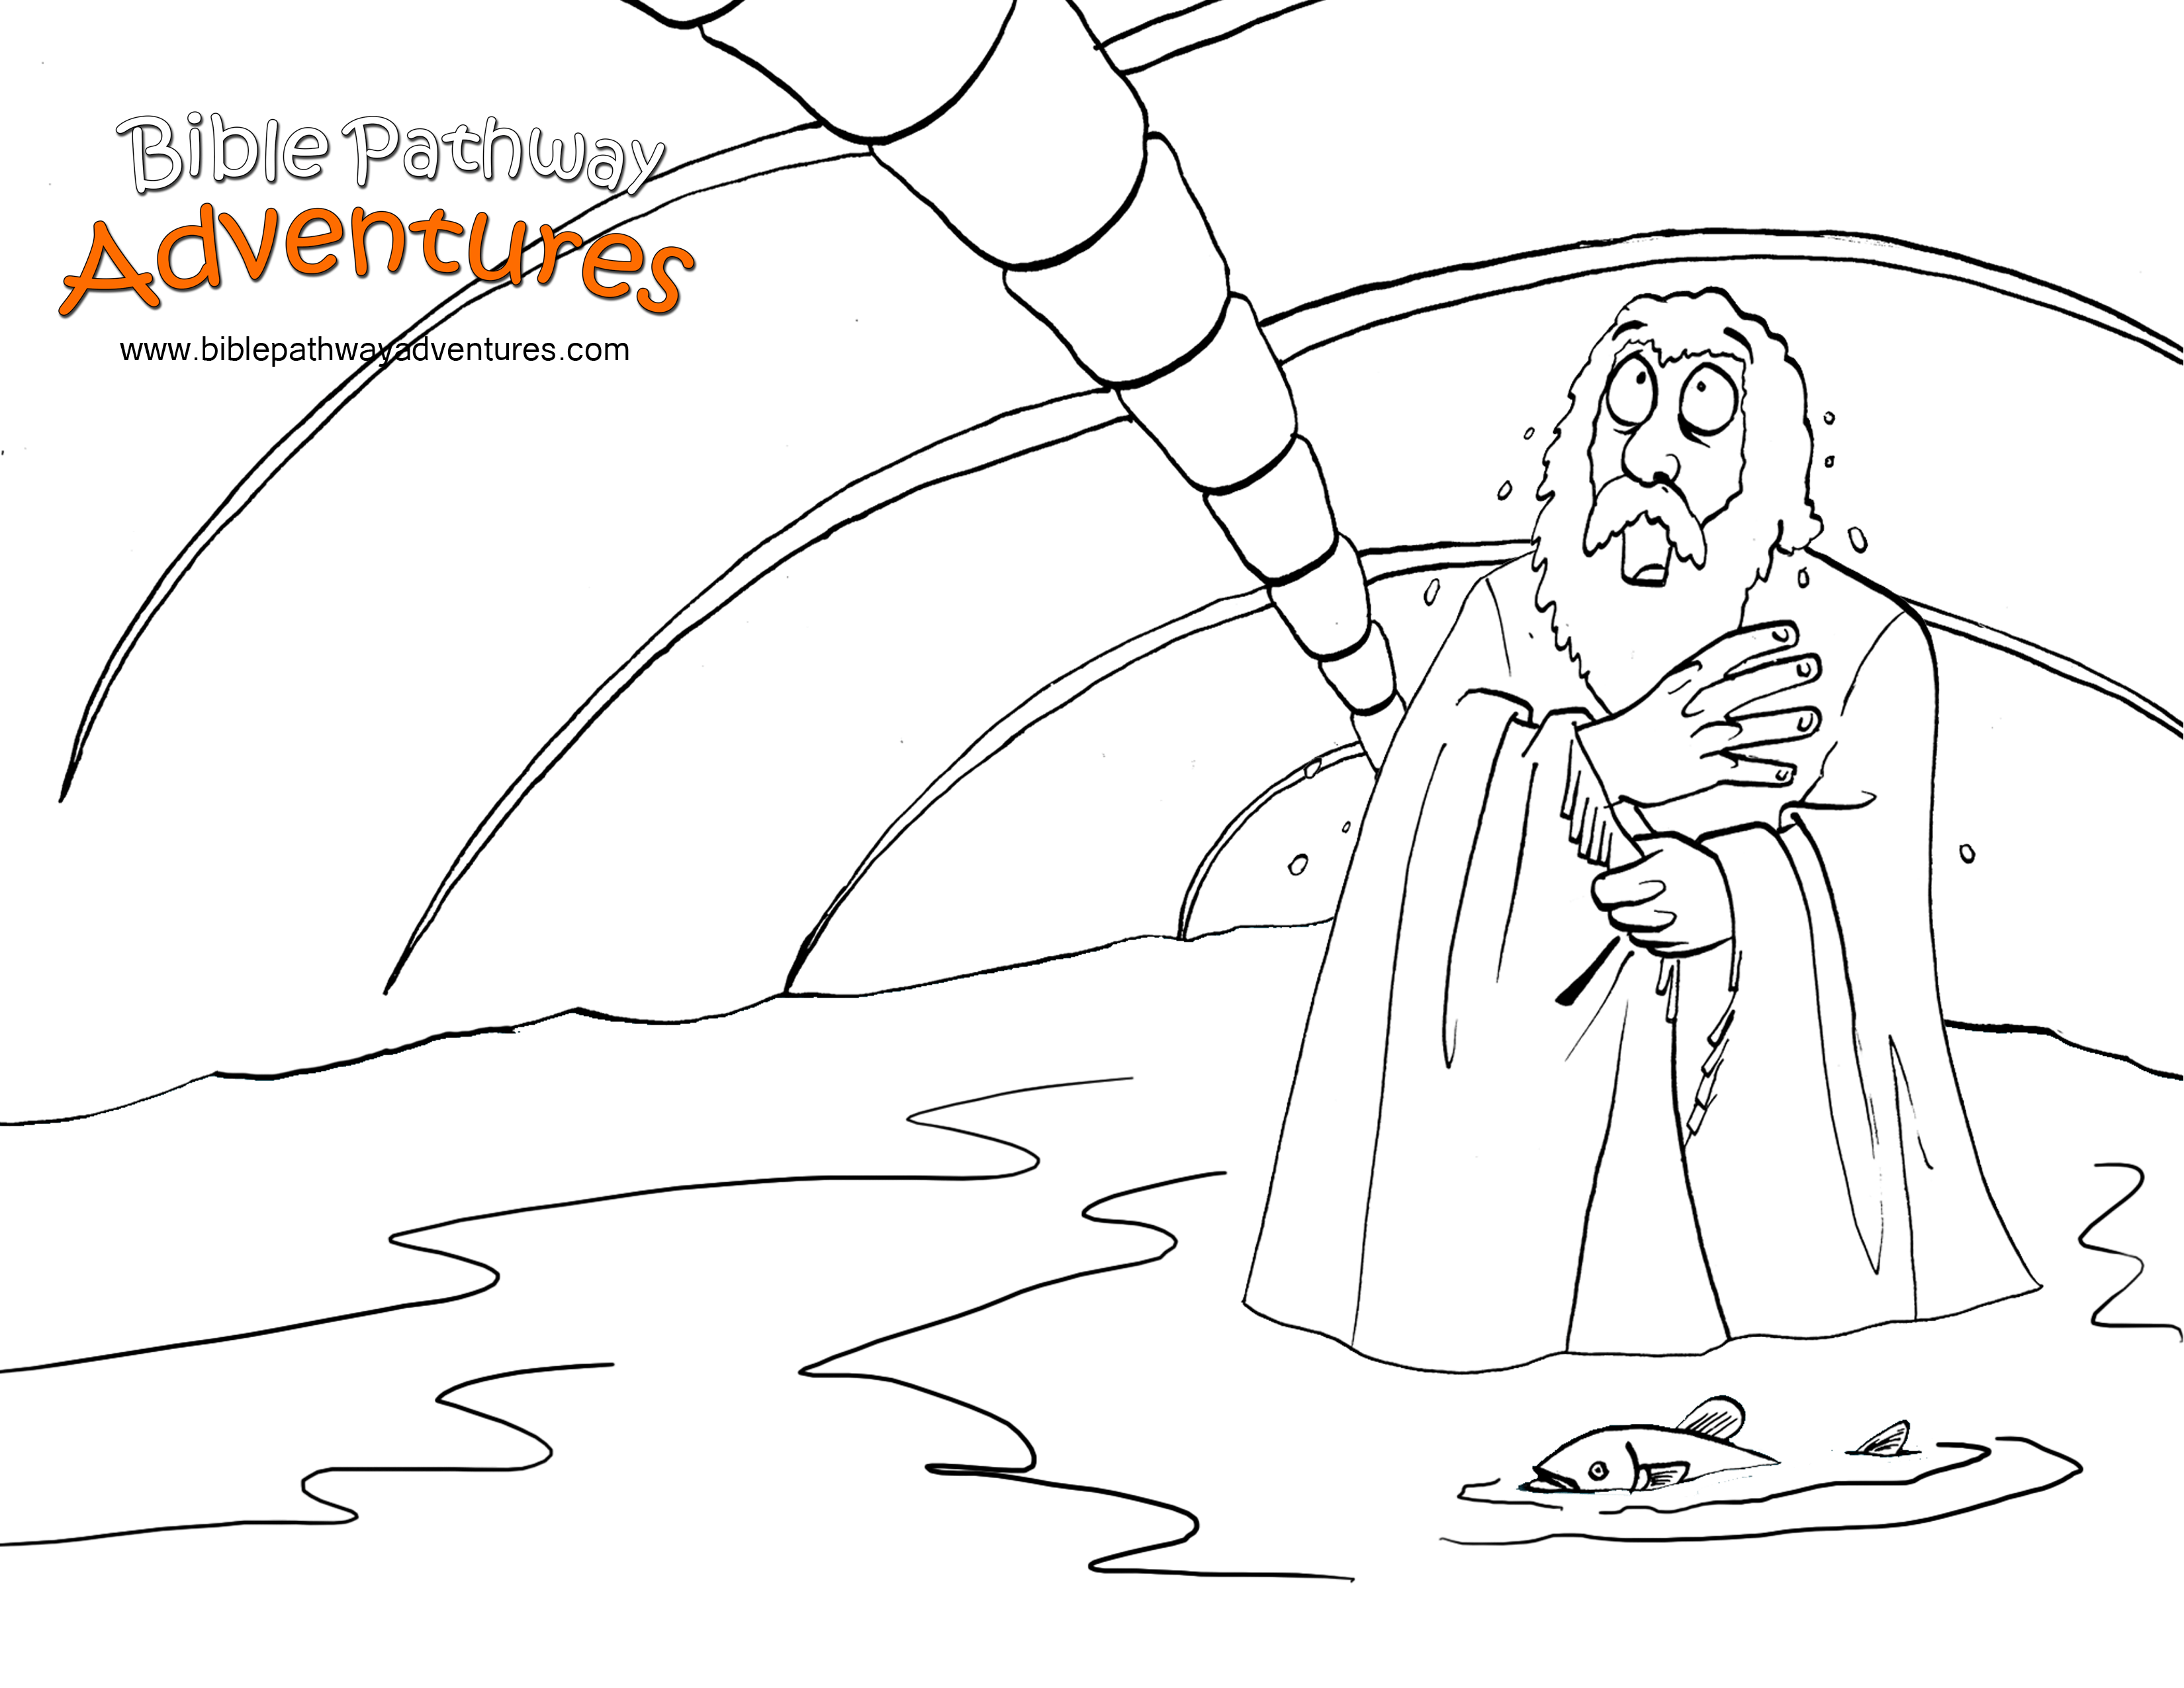 Free Bible Coloring Page - Jonah Inside A Fish | Old Jonah